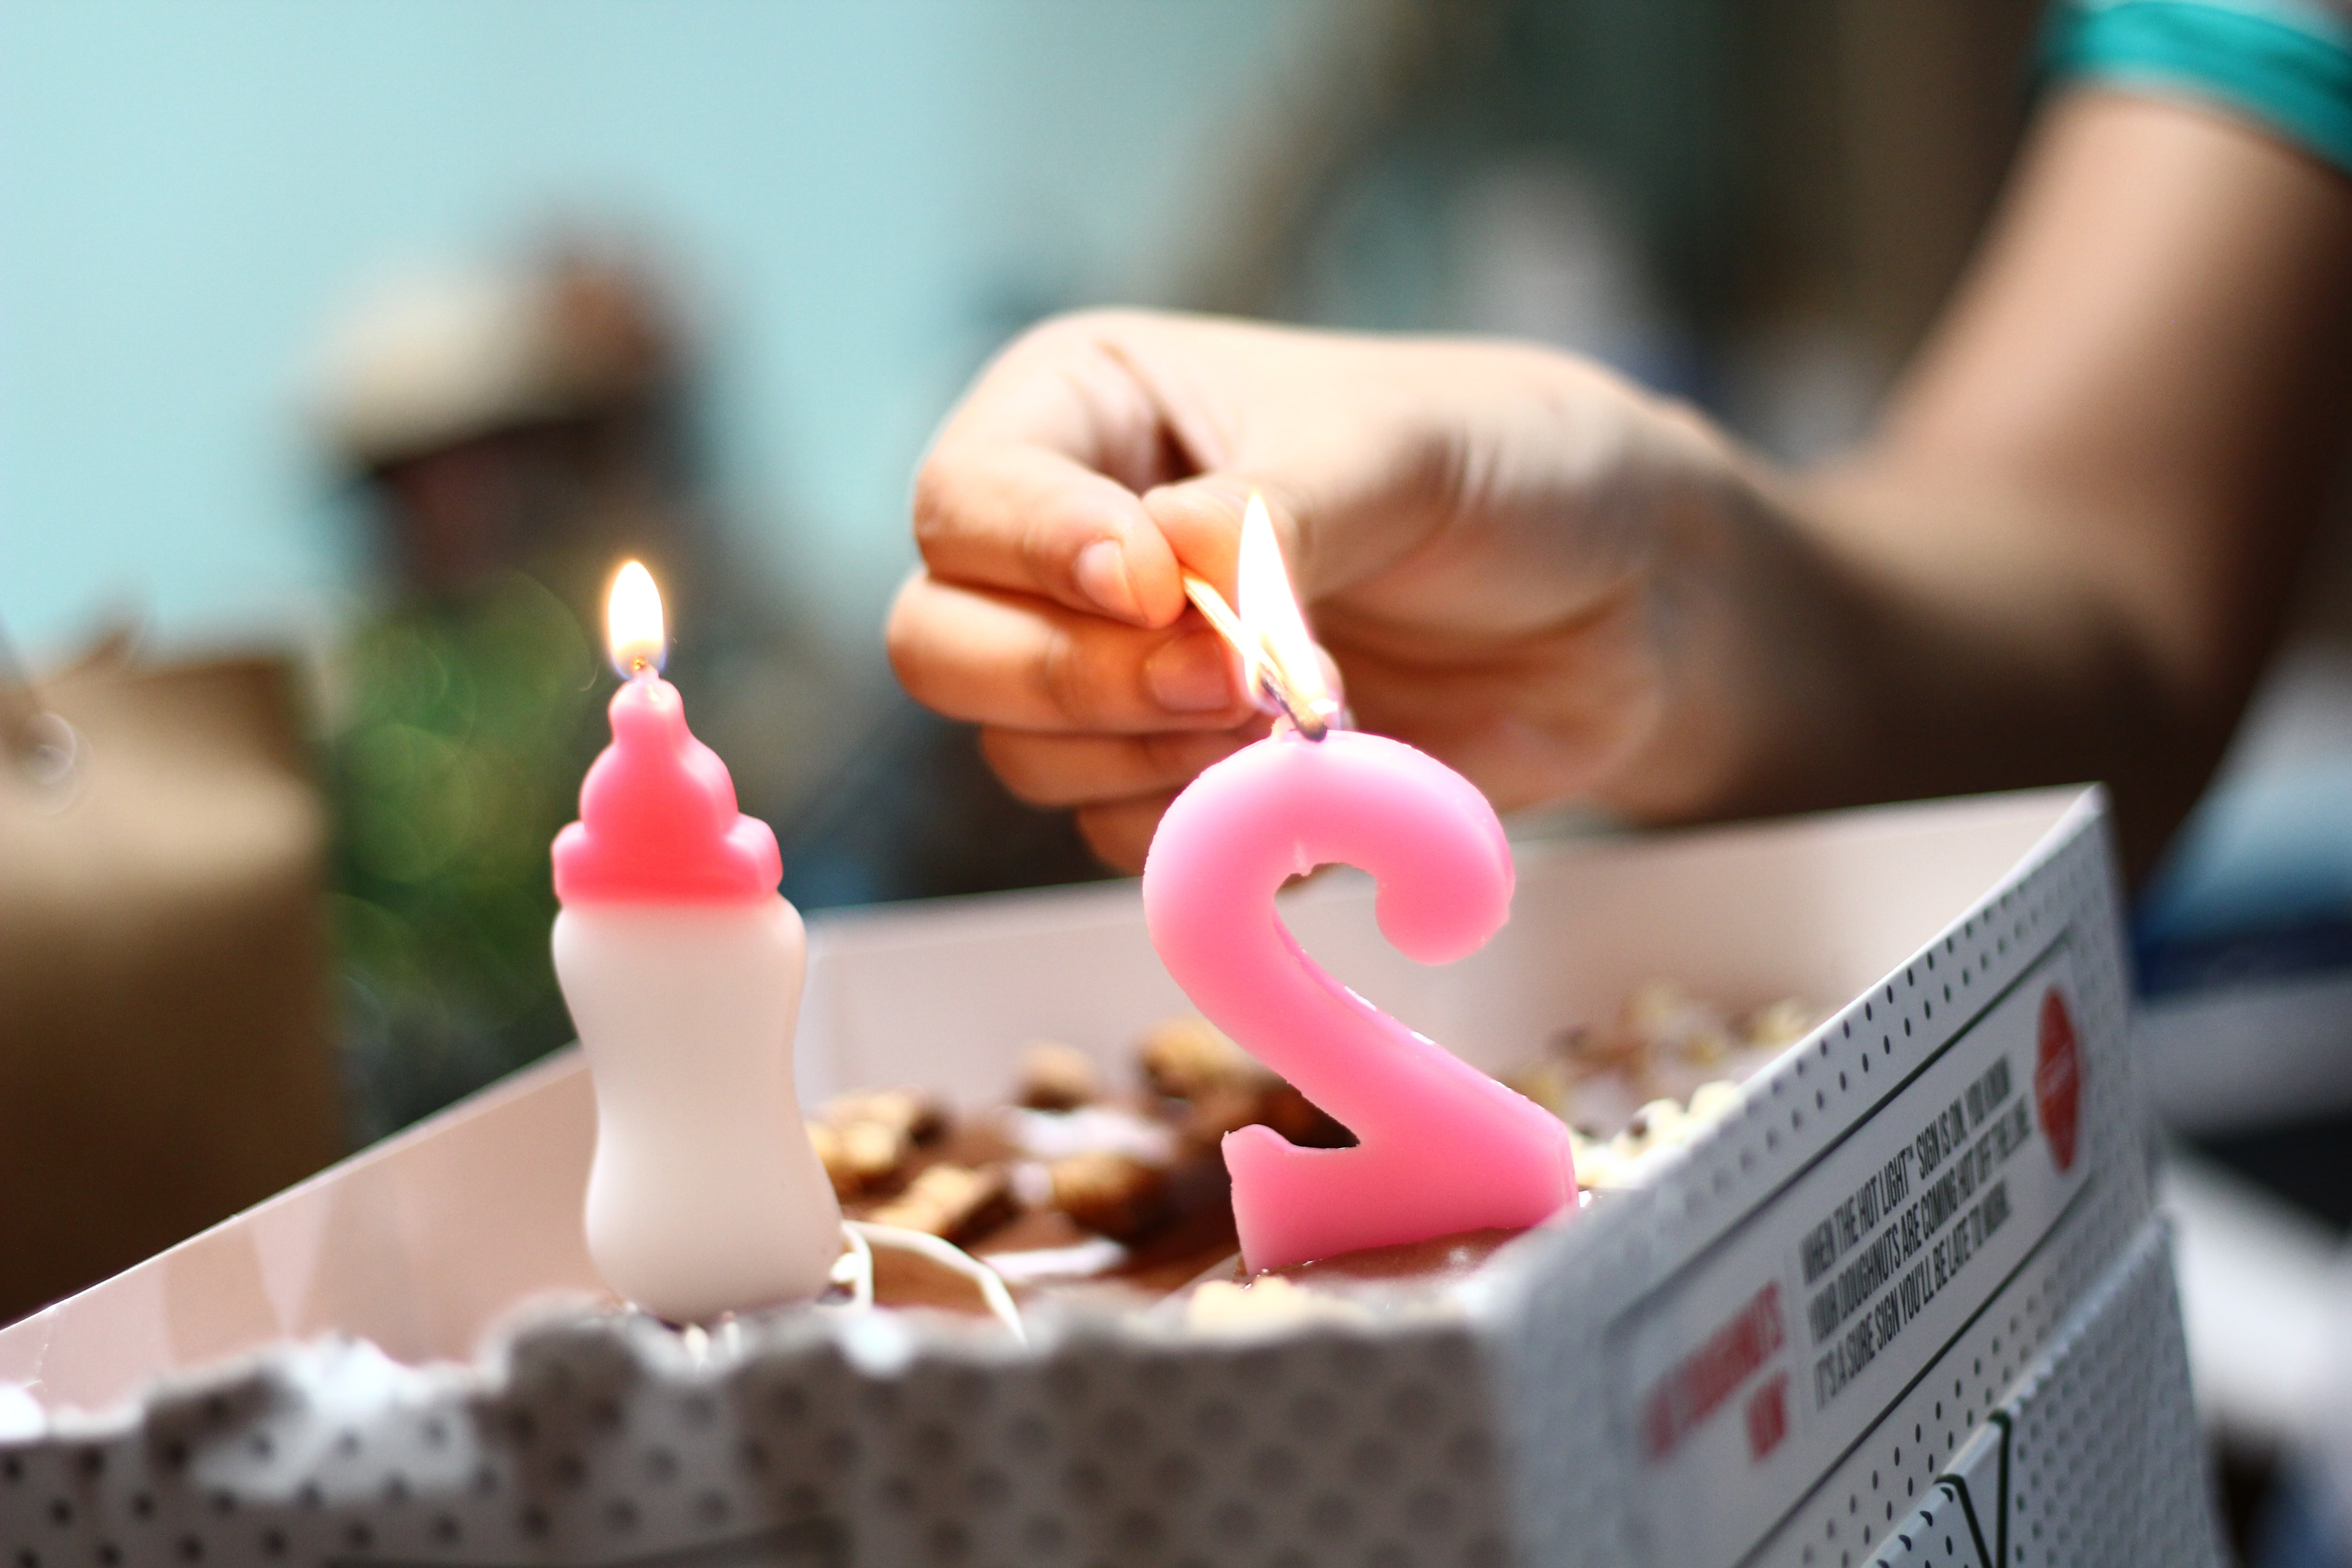 person lighting number 2 candle